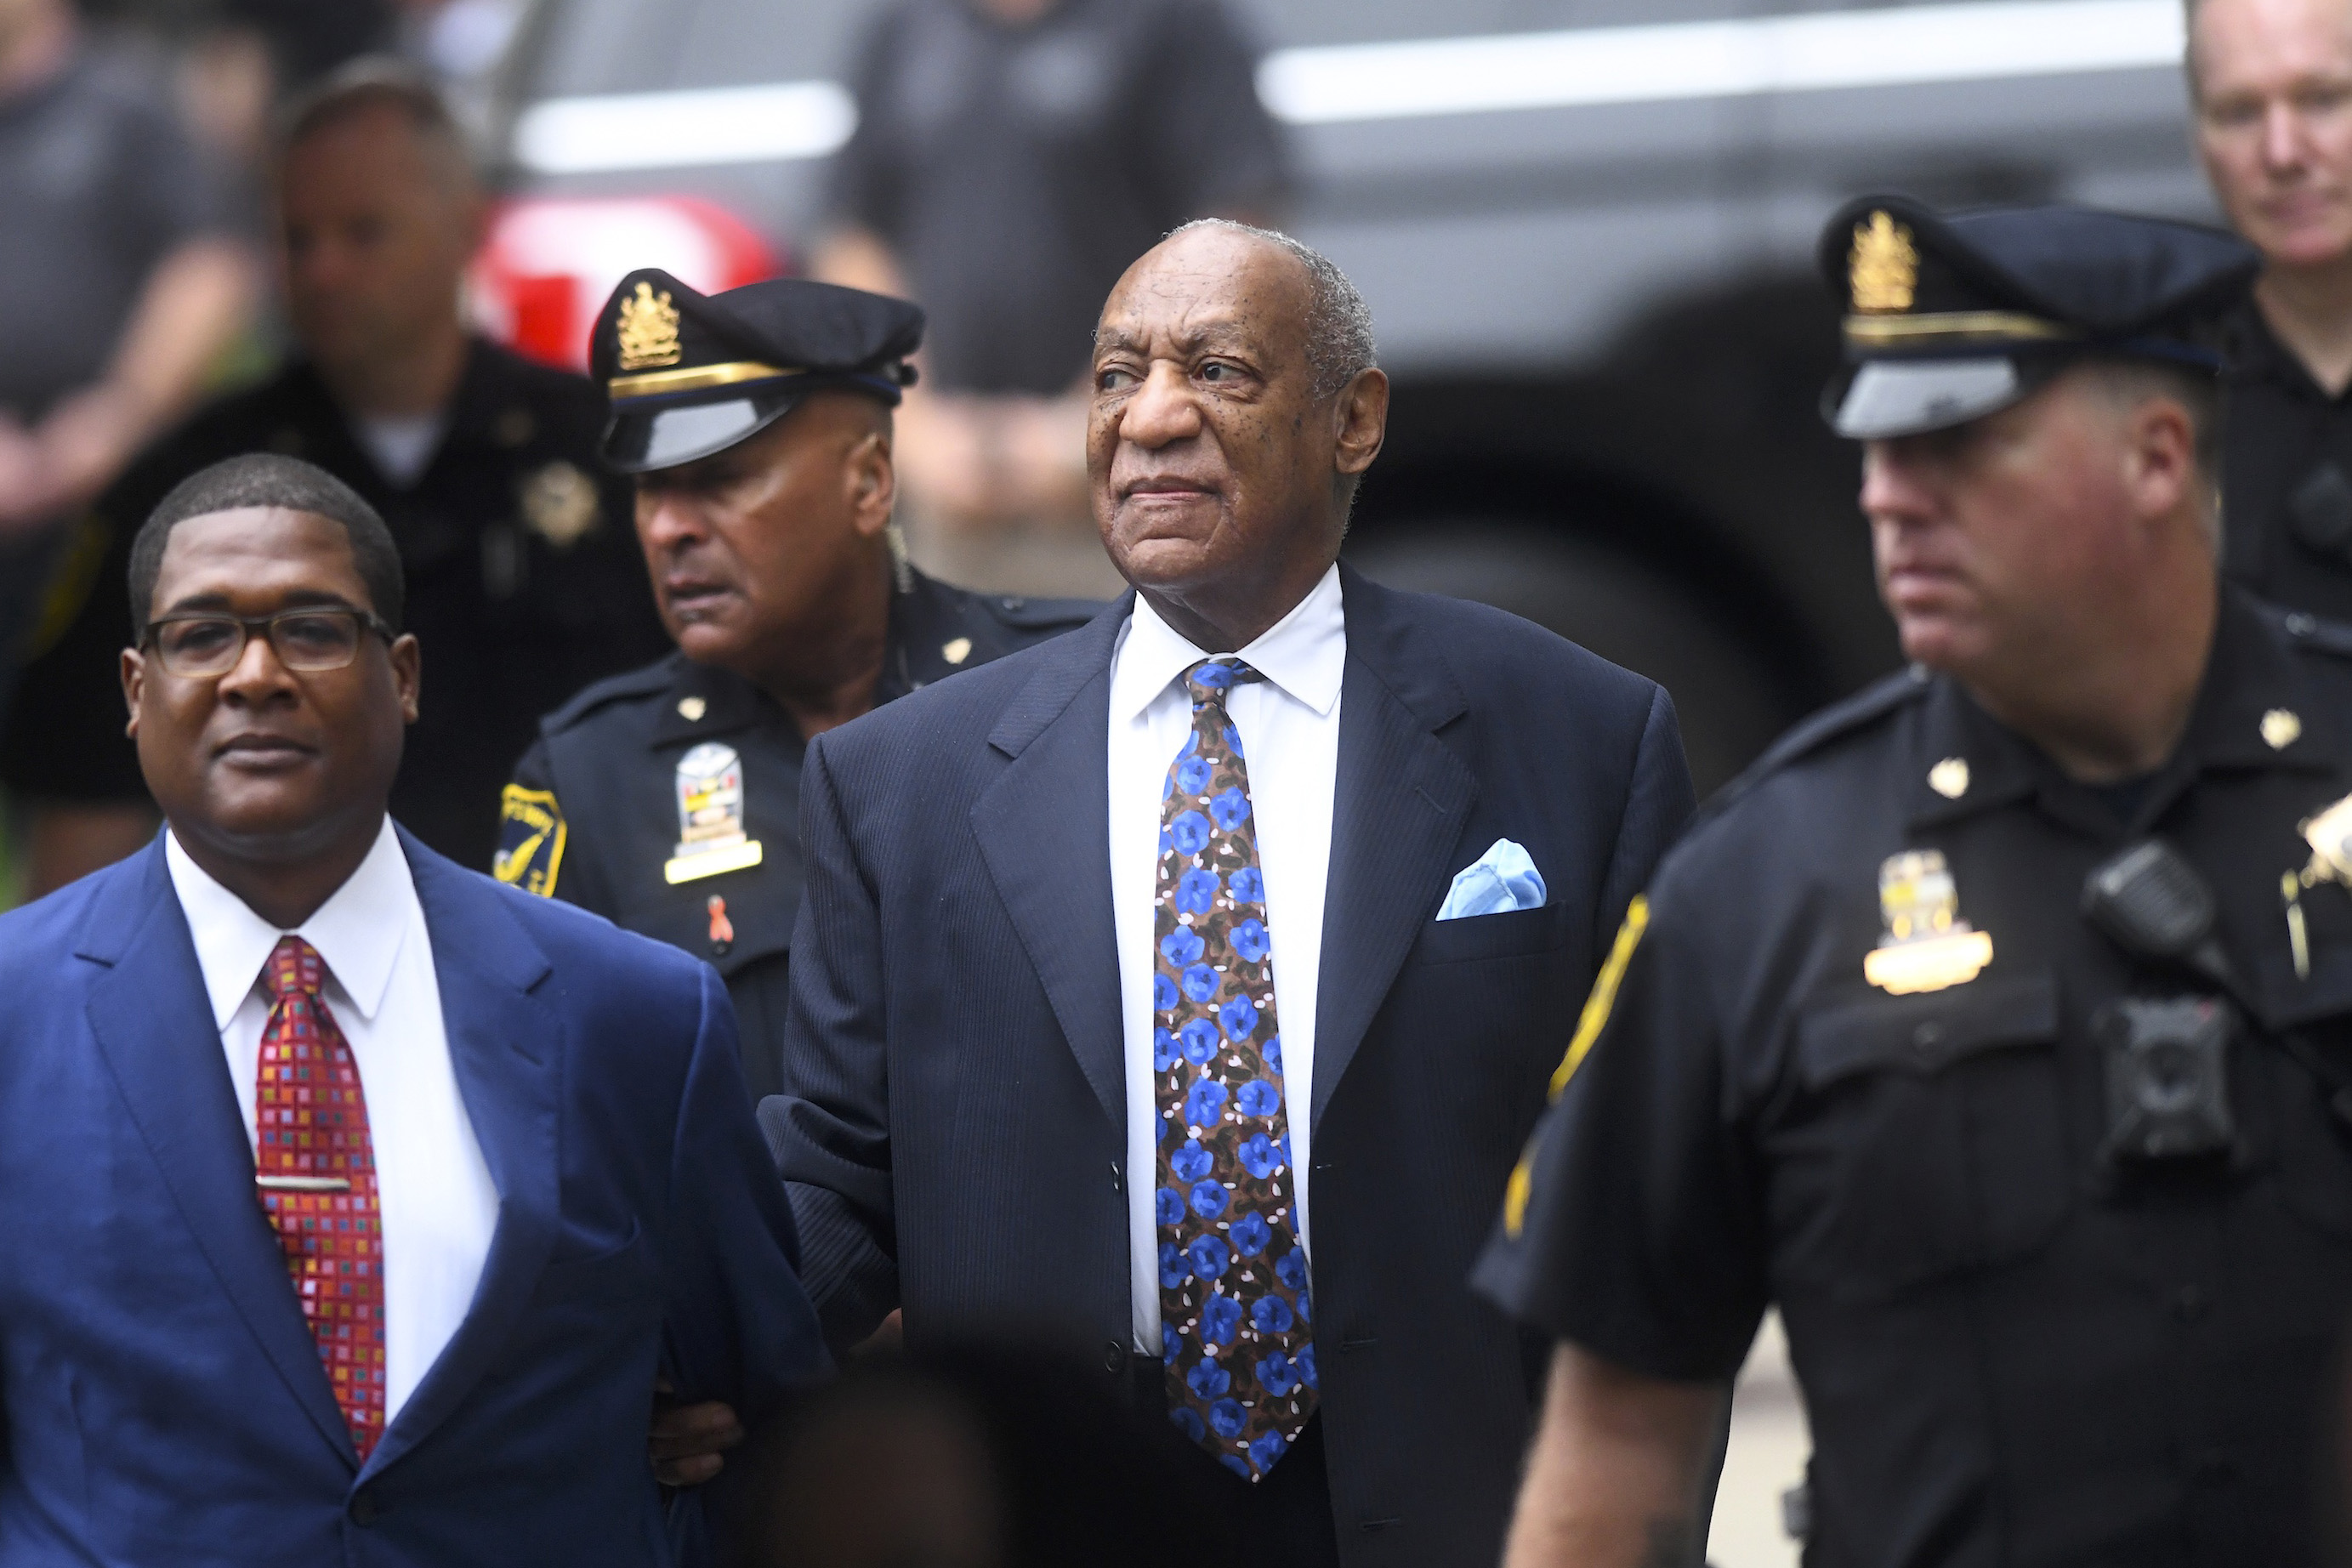 (C) Bill Cosby arrives at the Montgomery County Courthouse on the first day of sentencing in his sexual assault trial on September 24, 2018 in Norristown, Pennsylvania. In April, Cosby was found guilty on three counts of aggravated indecent assault for drugging and sexually assaulting Andrea Constand at his suburban Philadelphia home in 2004. 60 women have accused the 80 year old entertainer of sexual assault.